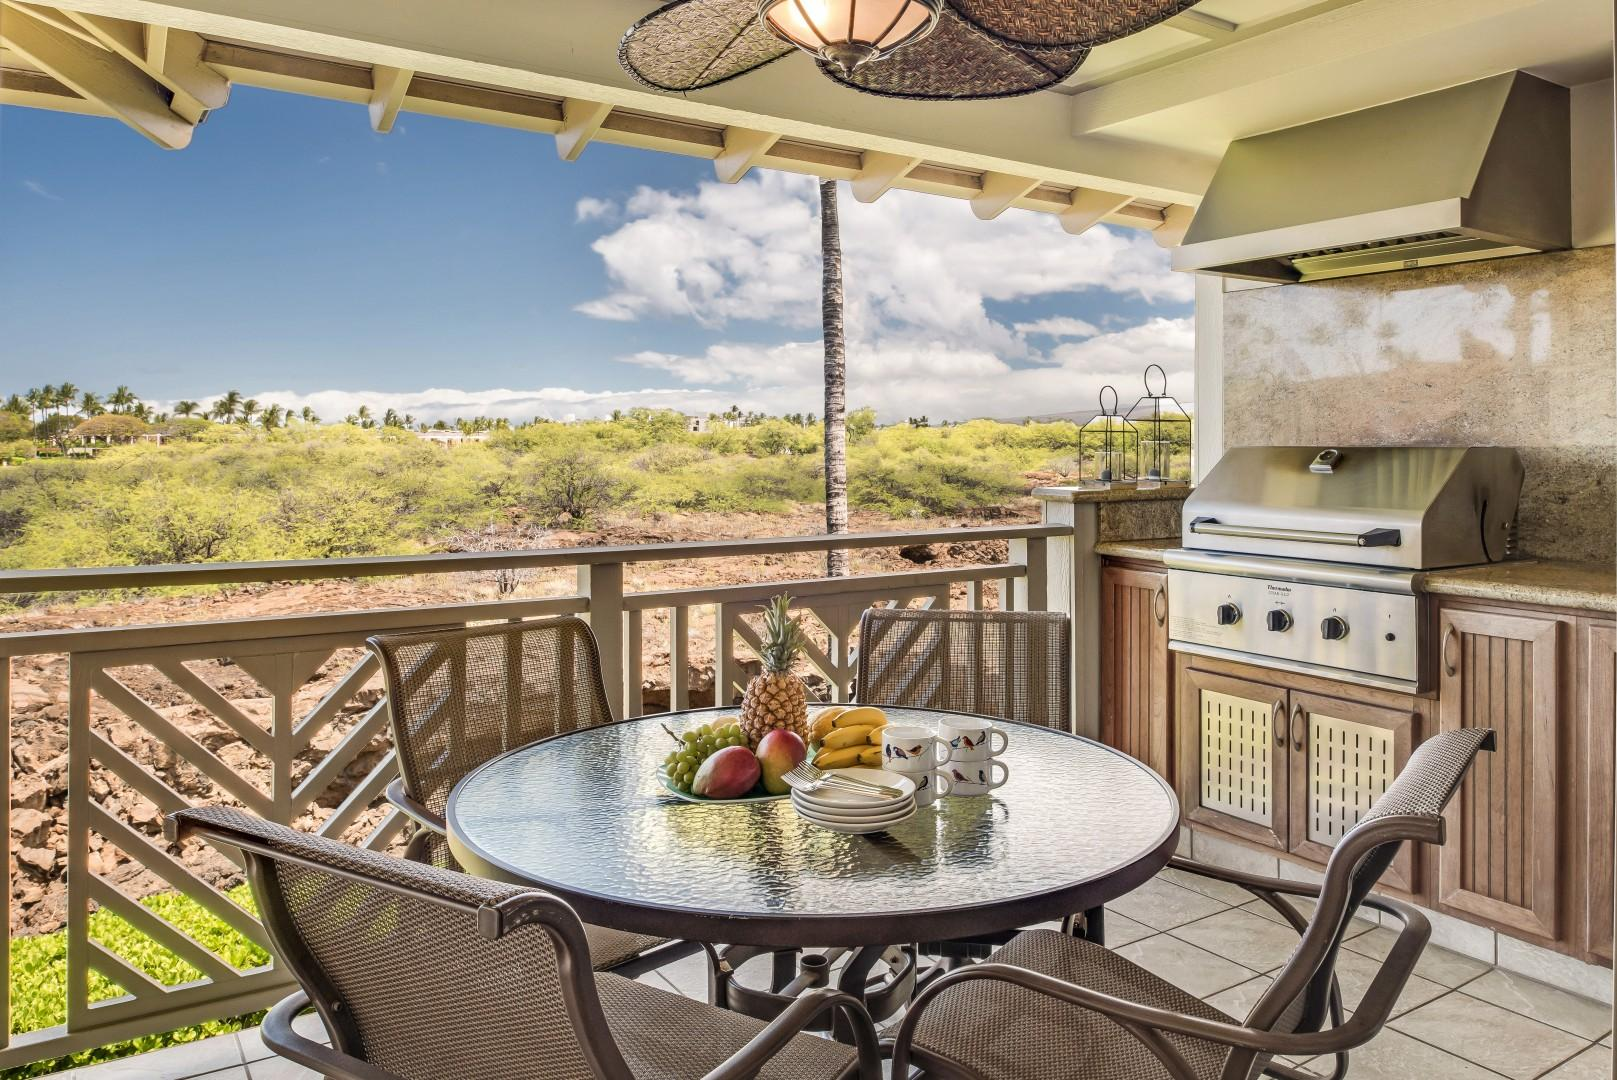 Private & Peaceful Lanai w/ Gas Grill Off Living Room Overlooks Historic Preserve, Sunsets & Peek-a-boo Ocean View